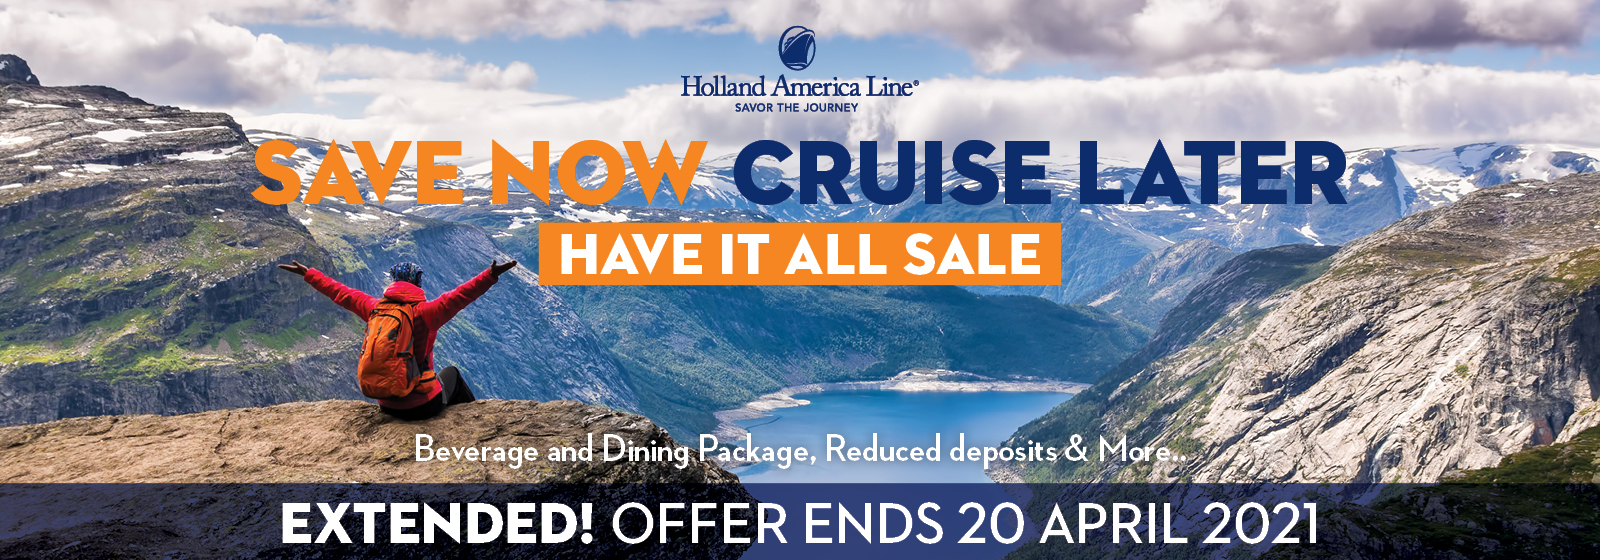 Holland America - Save Now, Cruise Later6